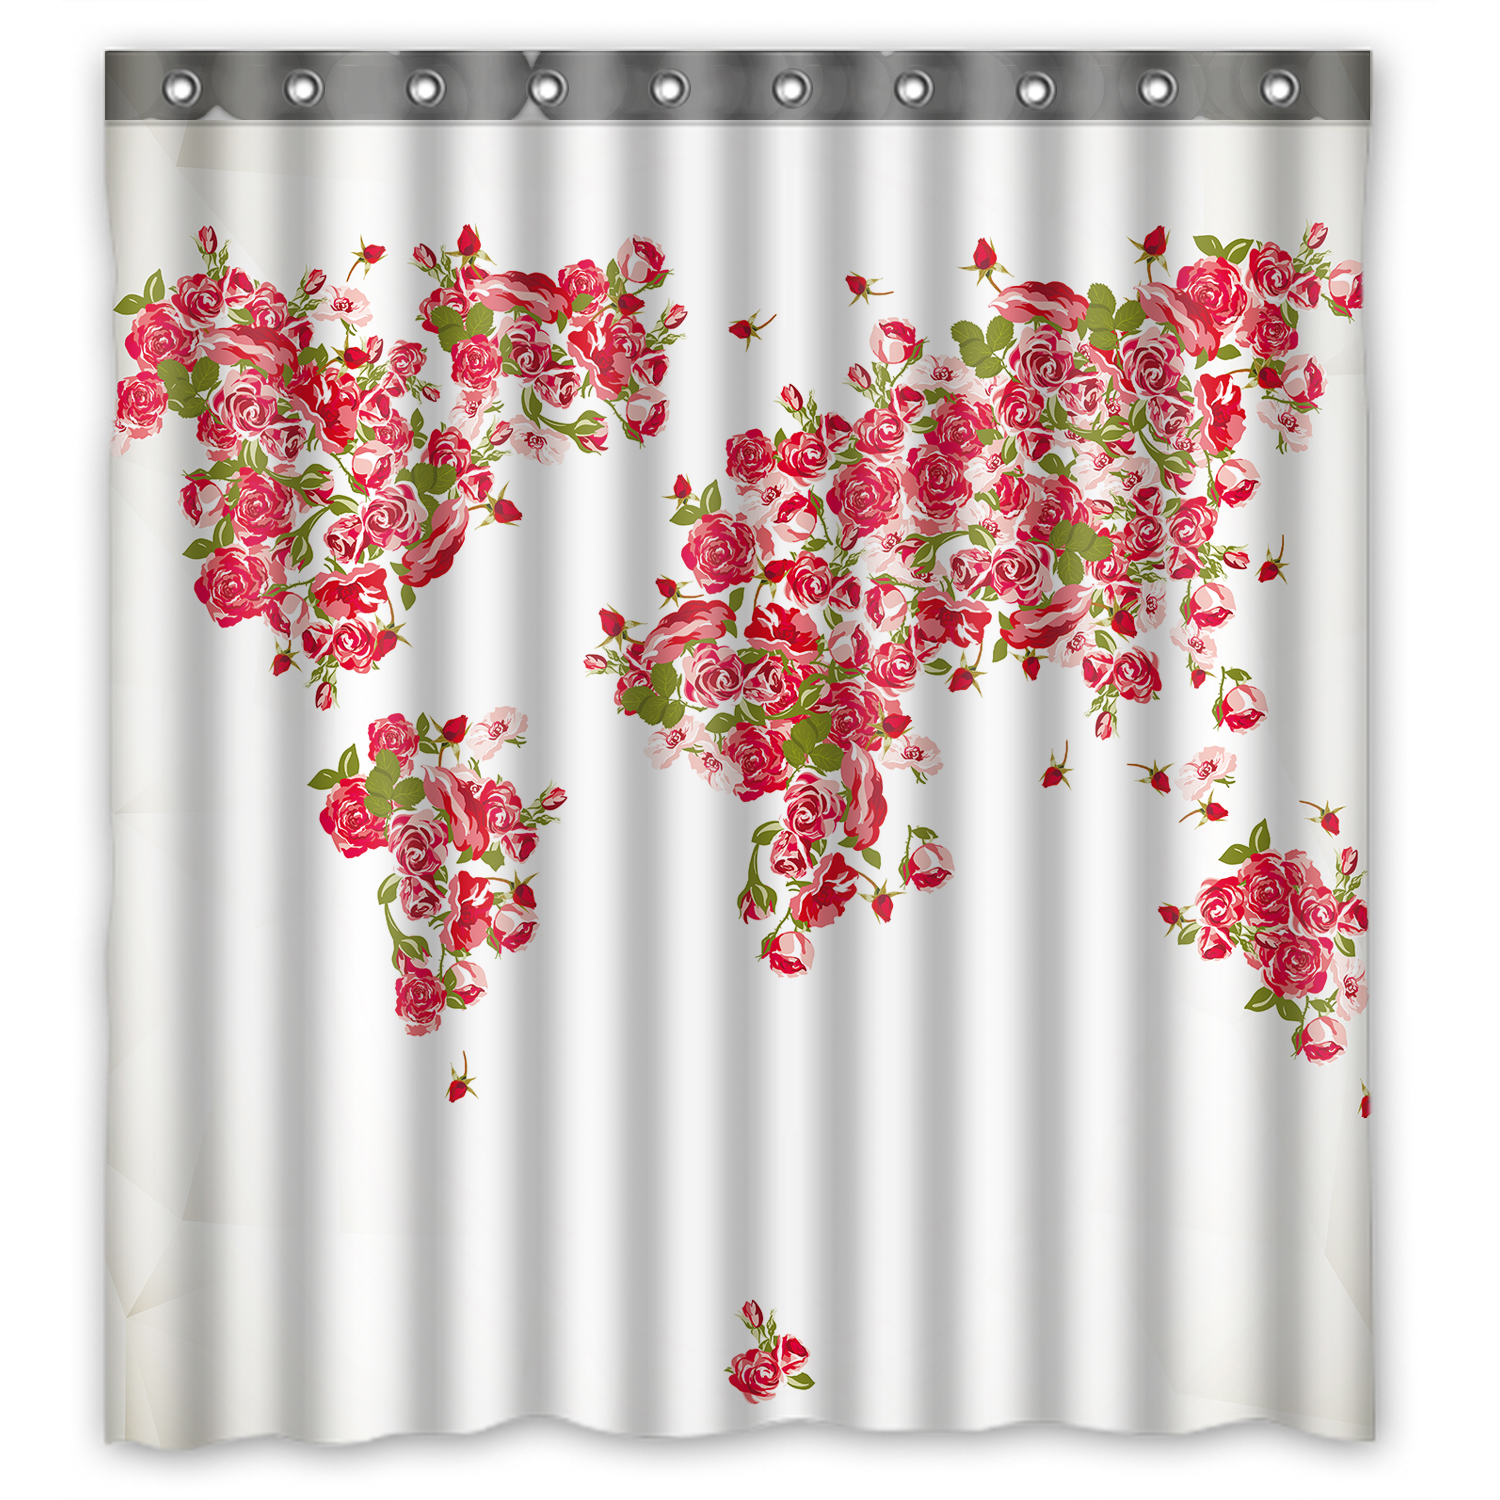 YKCG Vintage Floral Rose World Map Red Pink Color Fabric Antique World Map Rose Flower Waterproof Fabric Bathroom Shower Curtain 66x72 inches